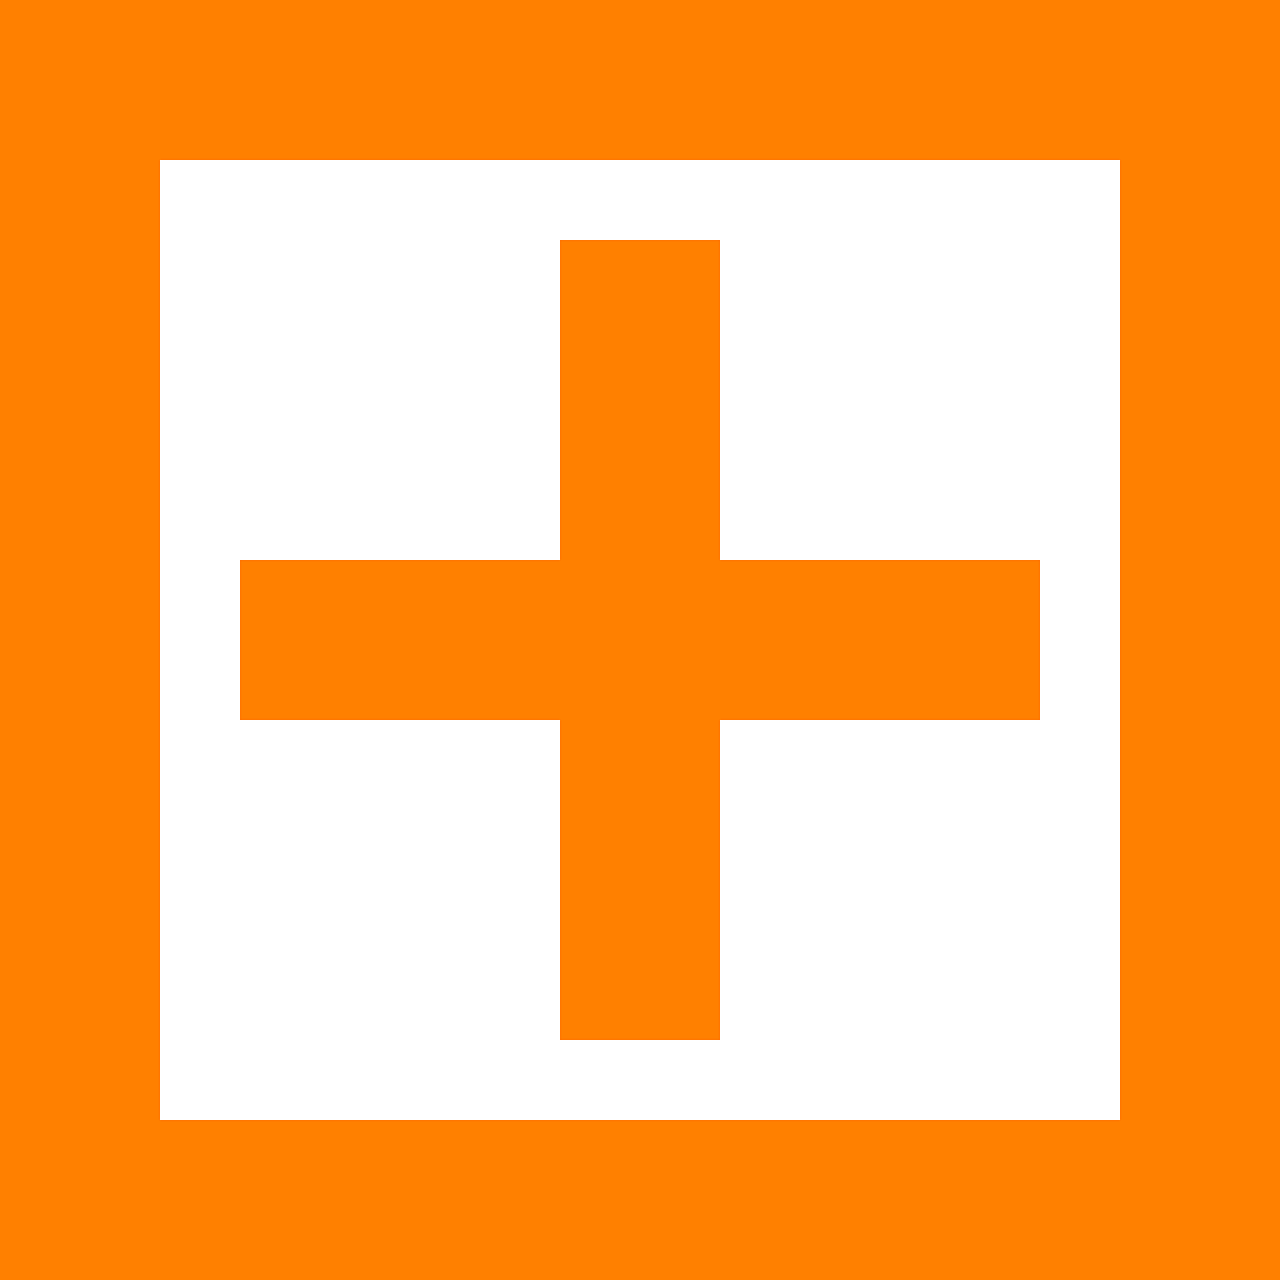 square plus orange free photo